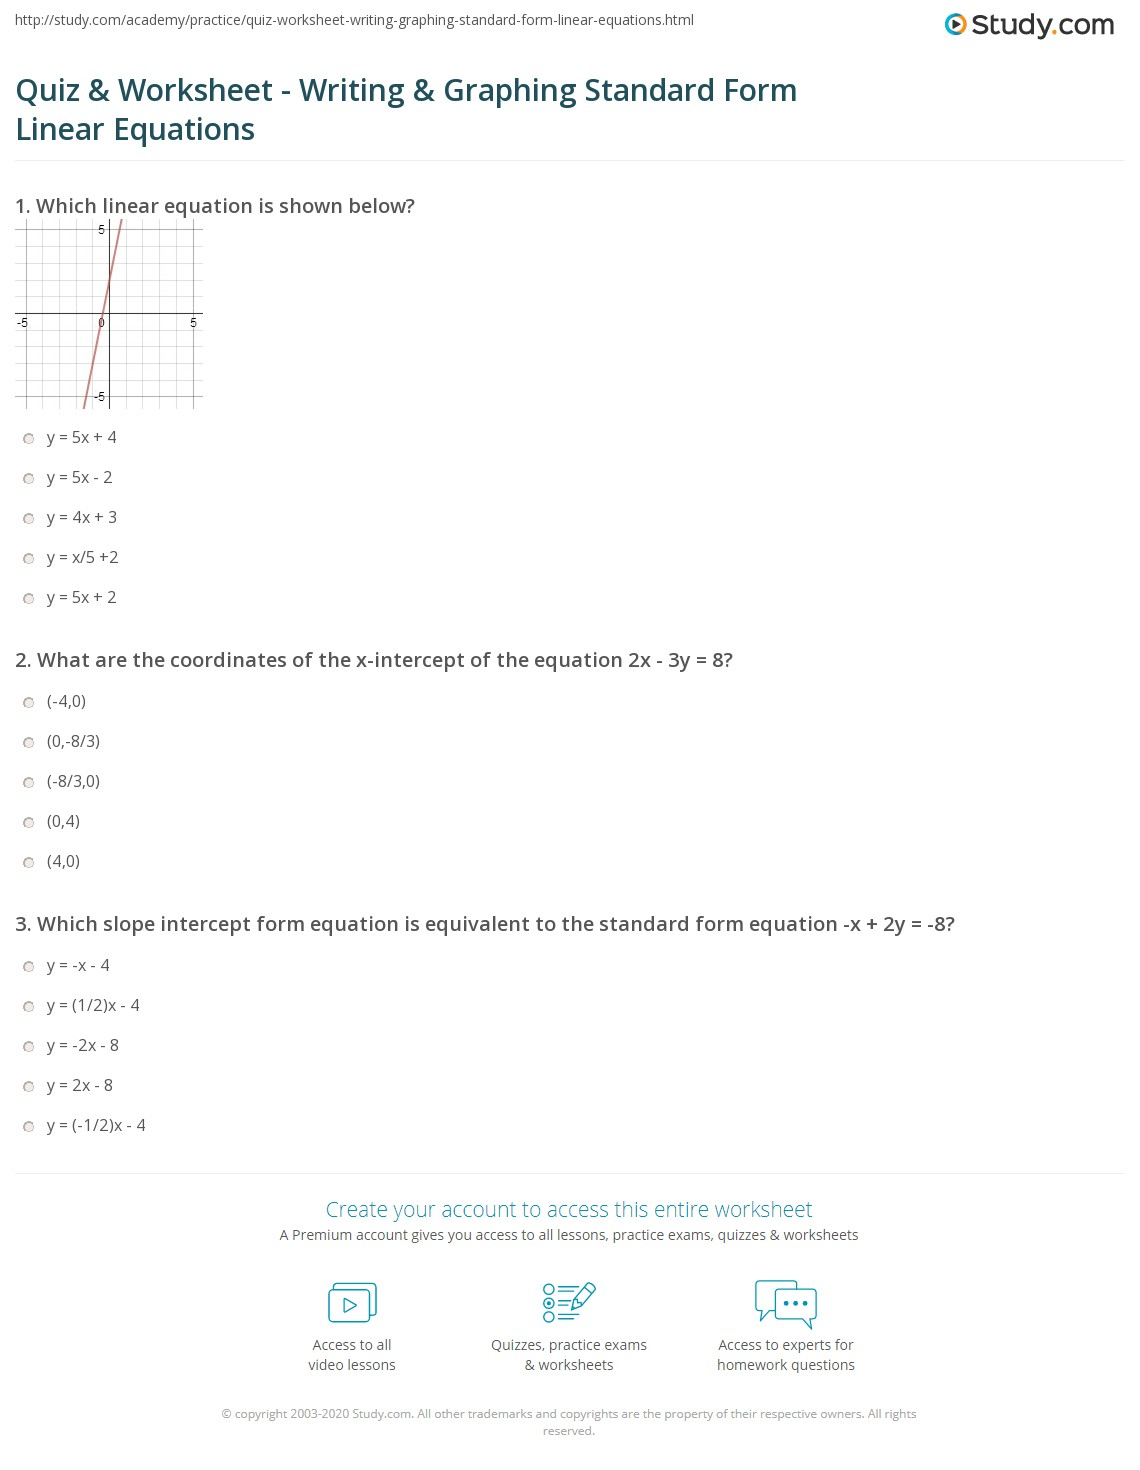 Quiz Worksheet Writing Graphing Standard Form Linear Equations